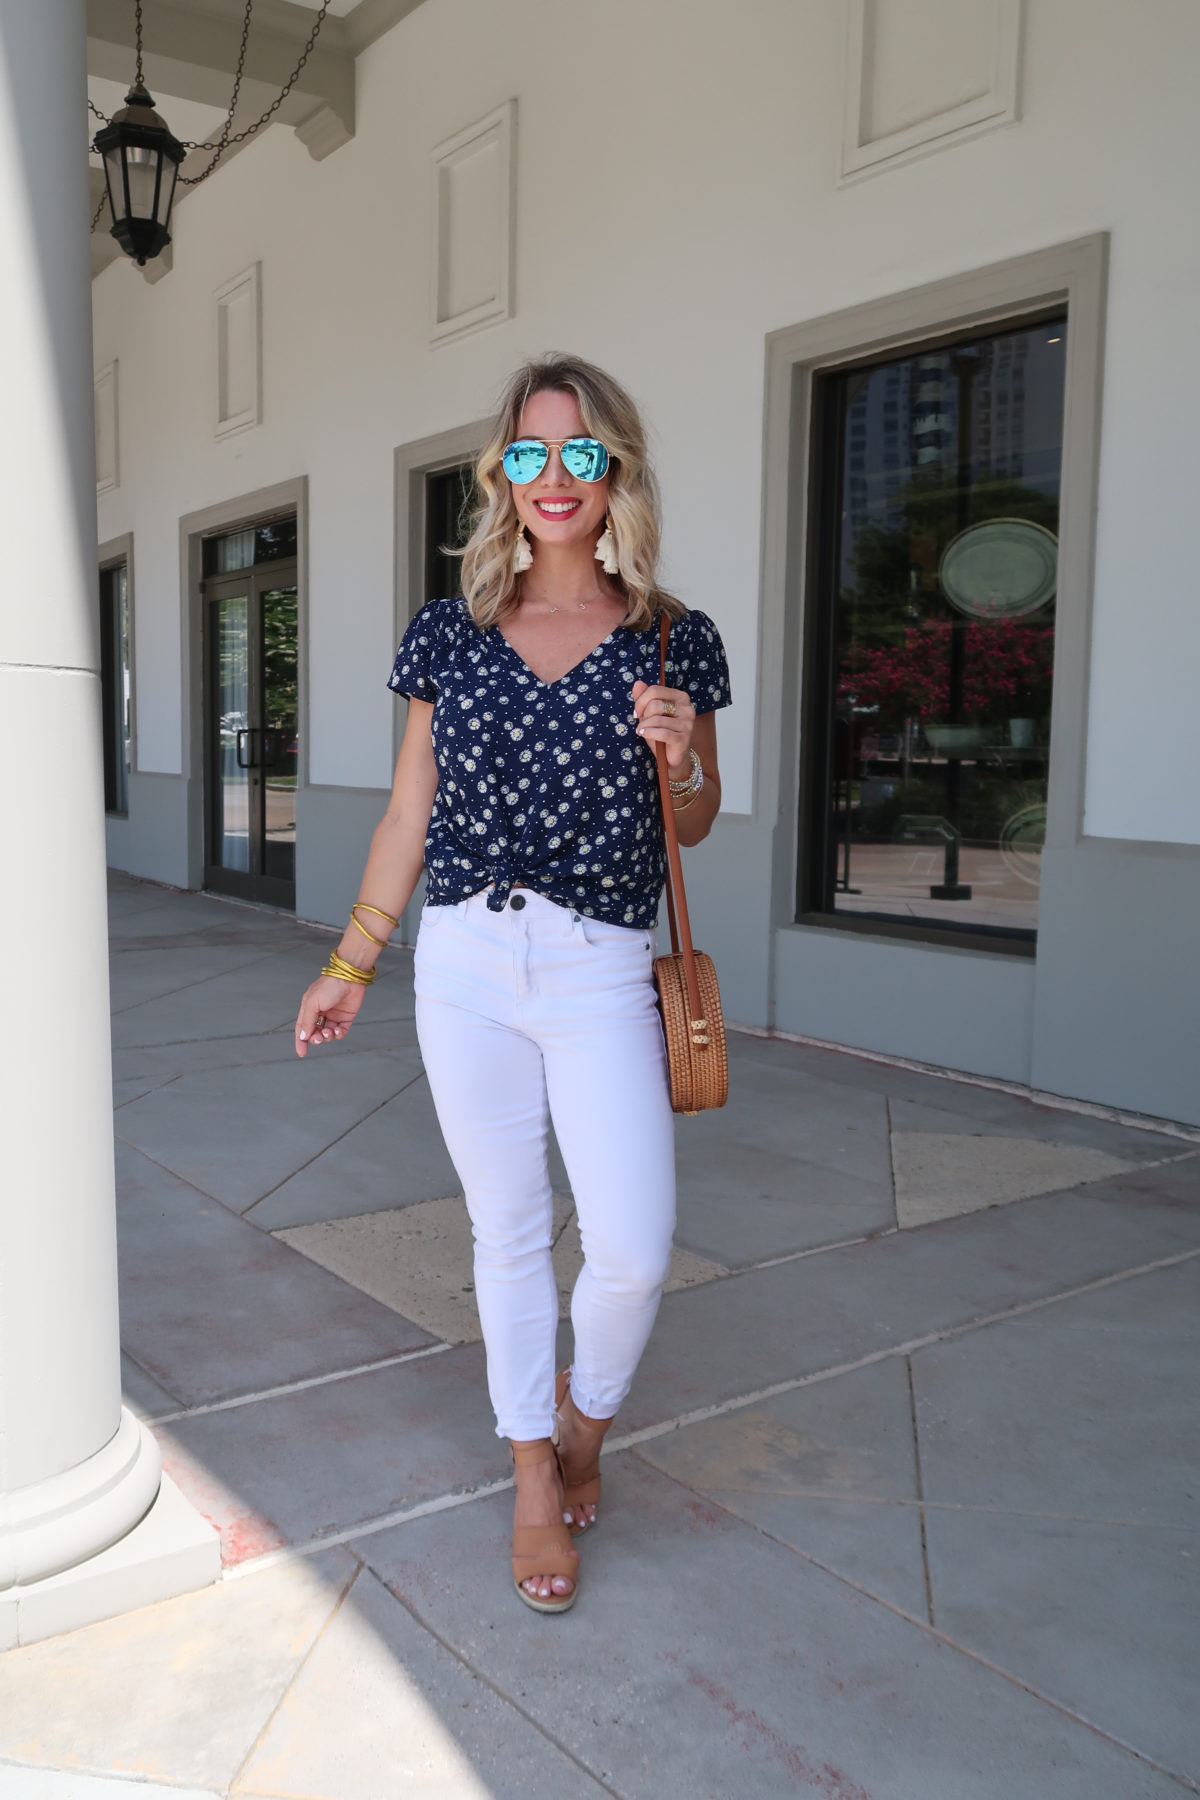 New Summer Styles, Nordstrom and Gibson, Daisy Print Top, Kut from Kloth Jeans, Wedges, Woven Bag, Blue Sunglasses